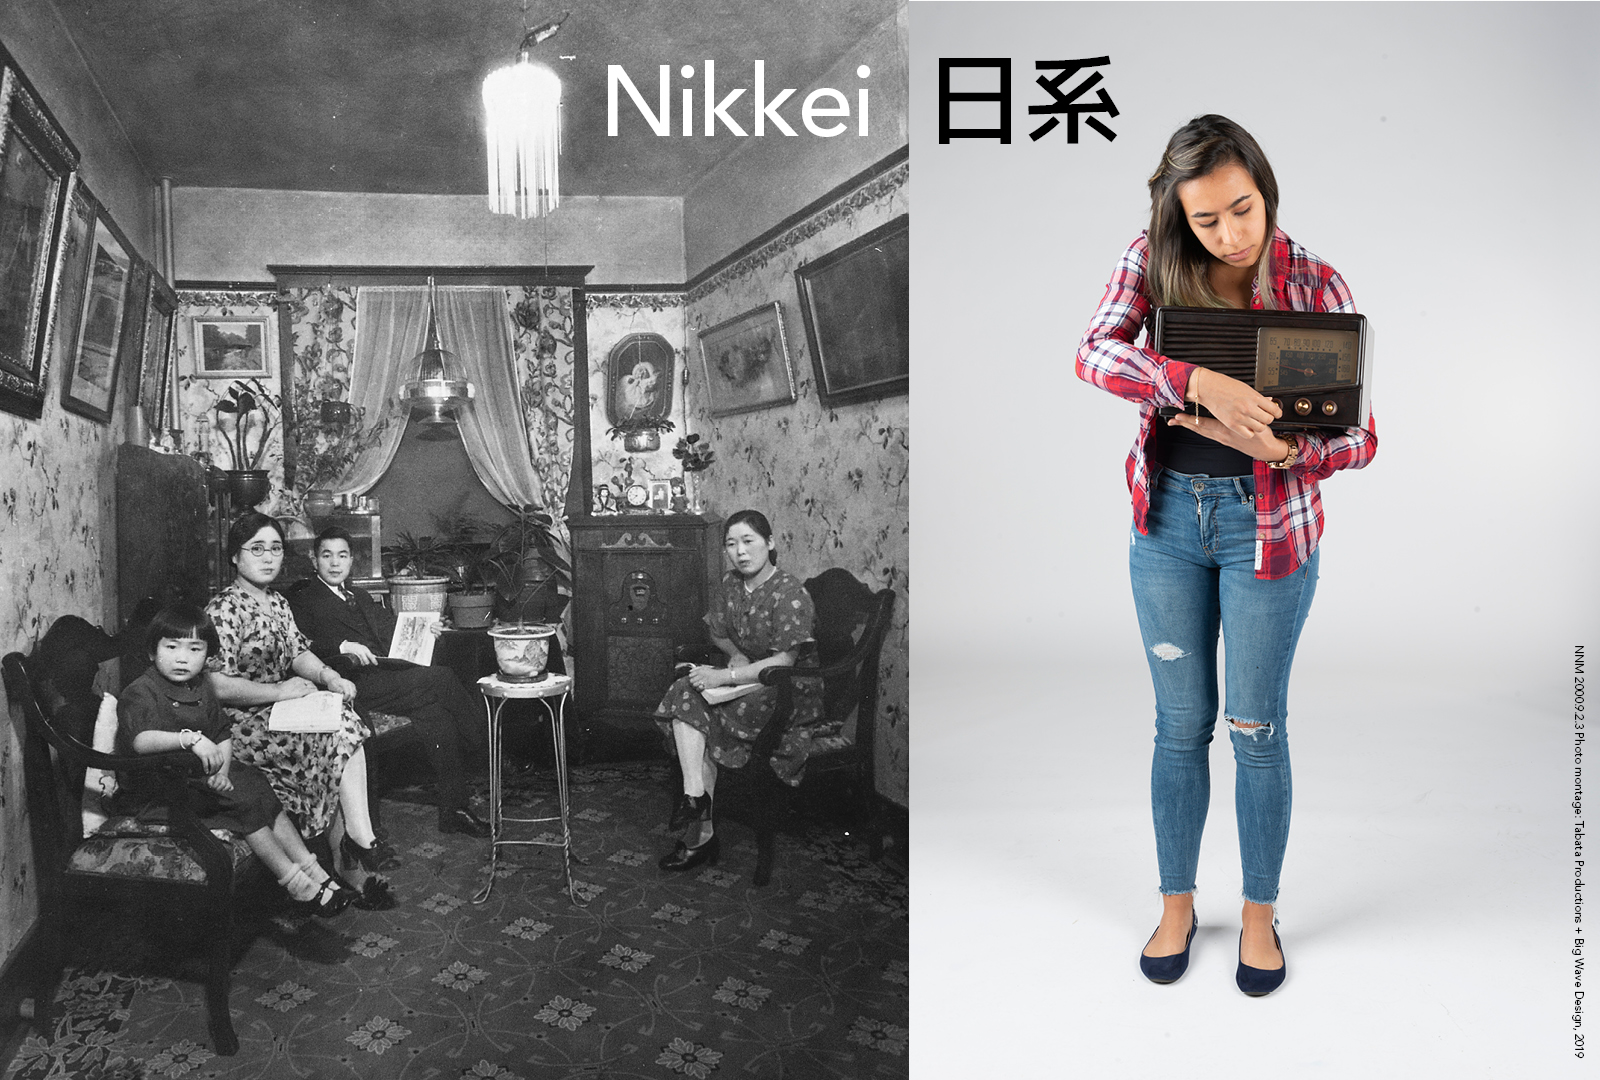 NikkeiExhibit_Web_1500x1080_withCredits_3.jpg